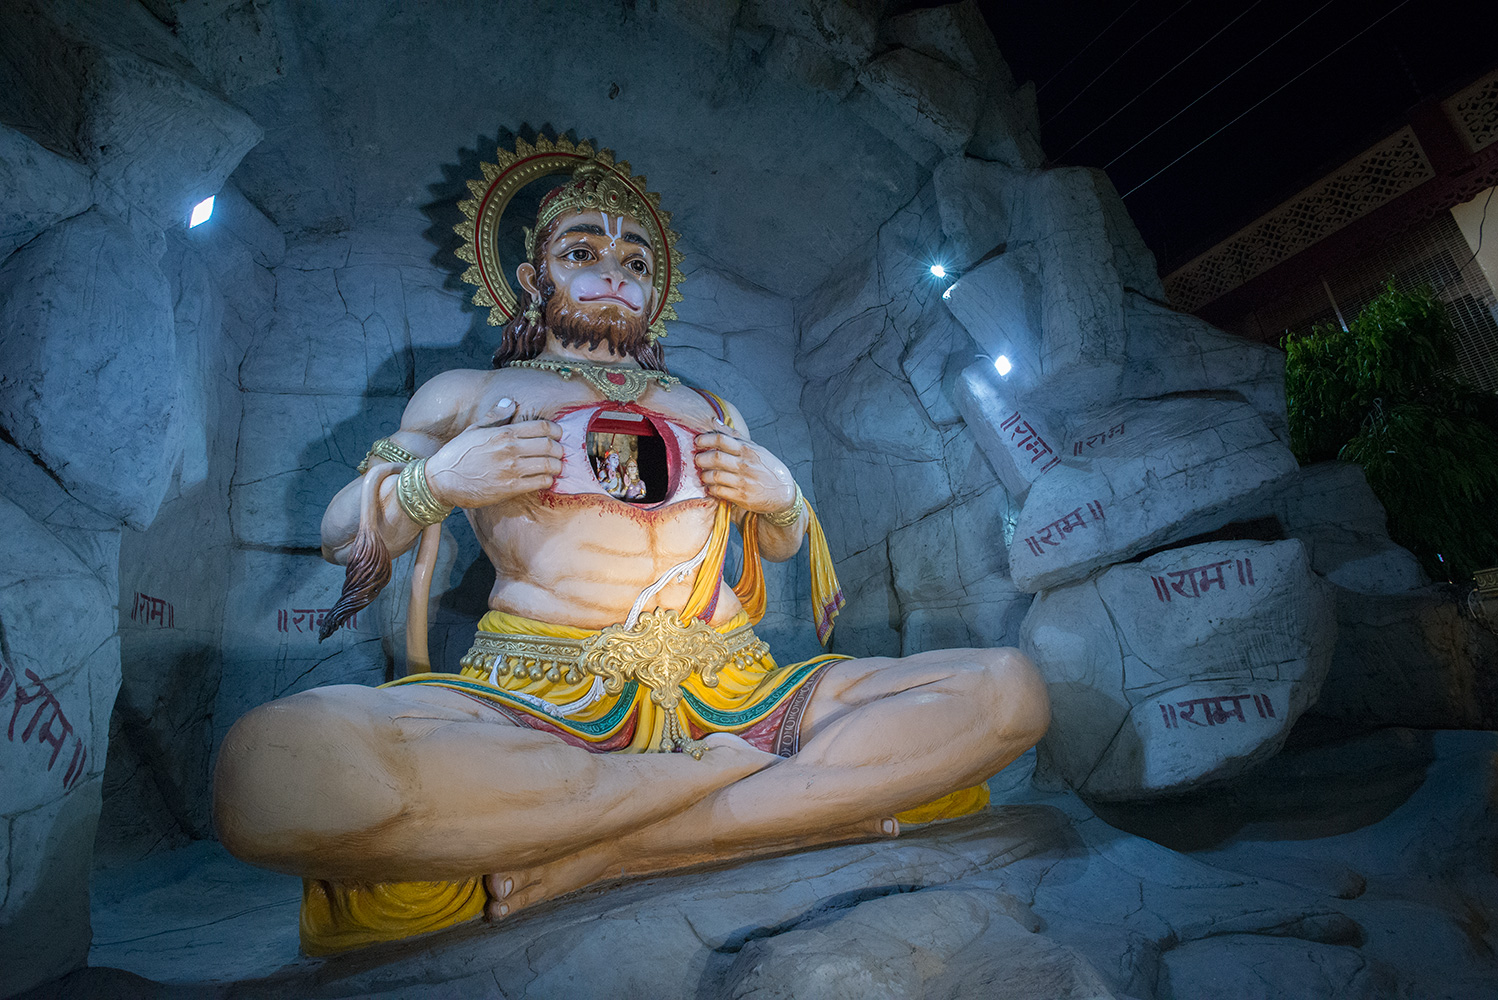 Hanuman is one of the central characters in the various versions of the epic Ramayana. In this huge statue at Rishikesh he is showing Rama and Sita in his heart.